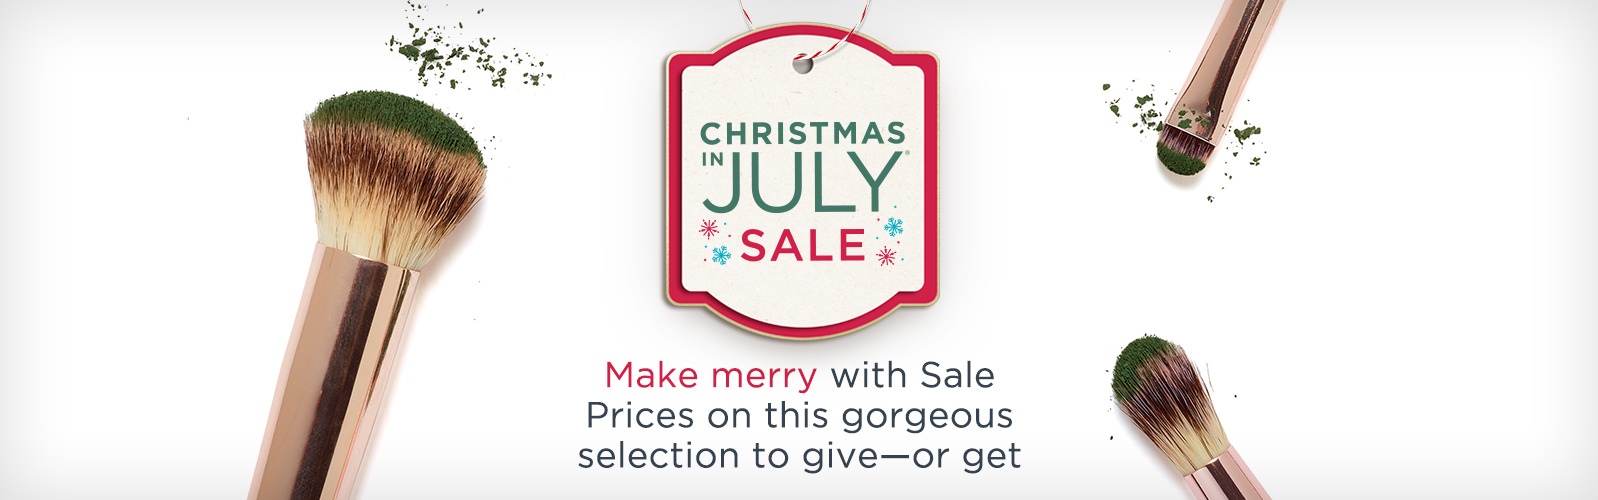 Christmas in July Sale. Make merry with Sale Prices on this gorgeous selection to give—or get